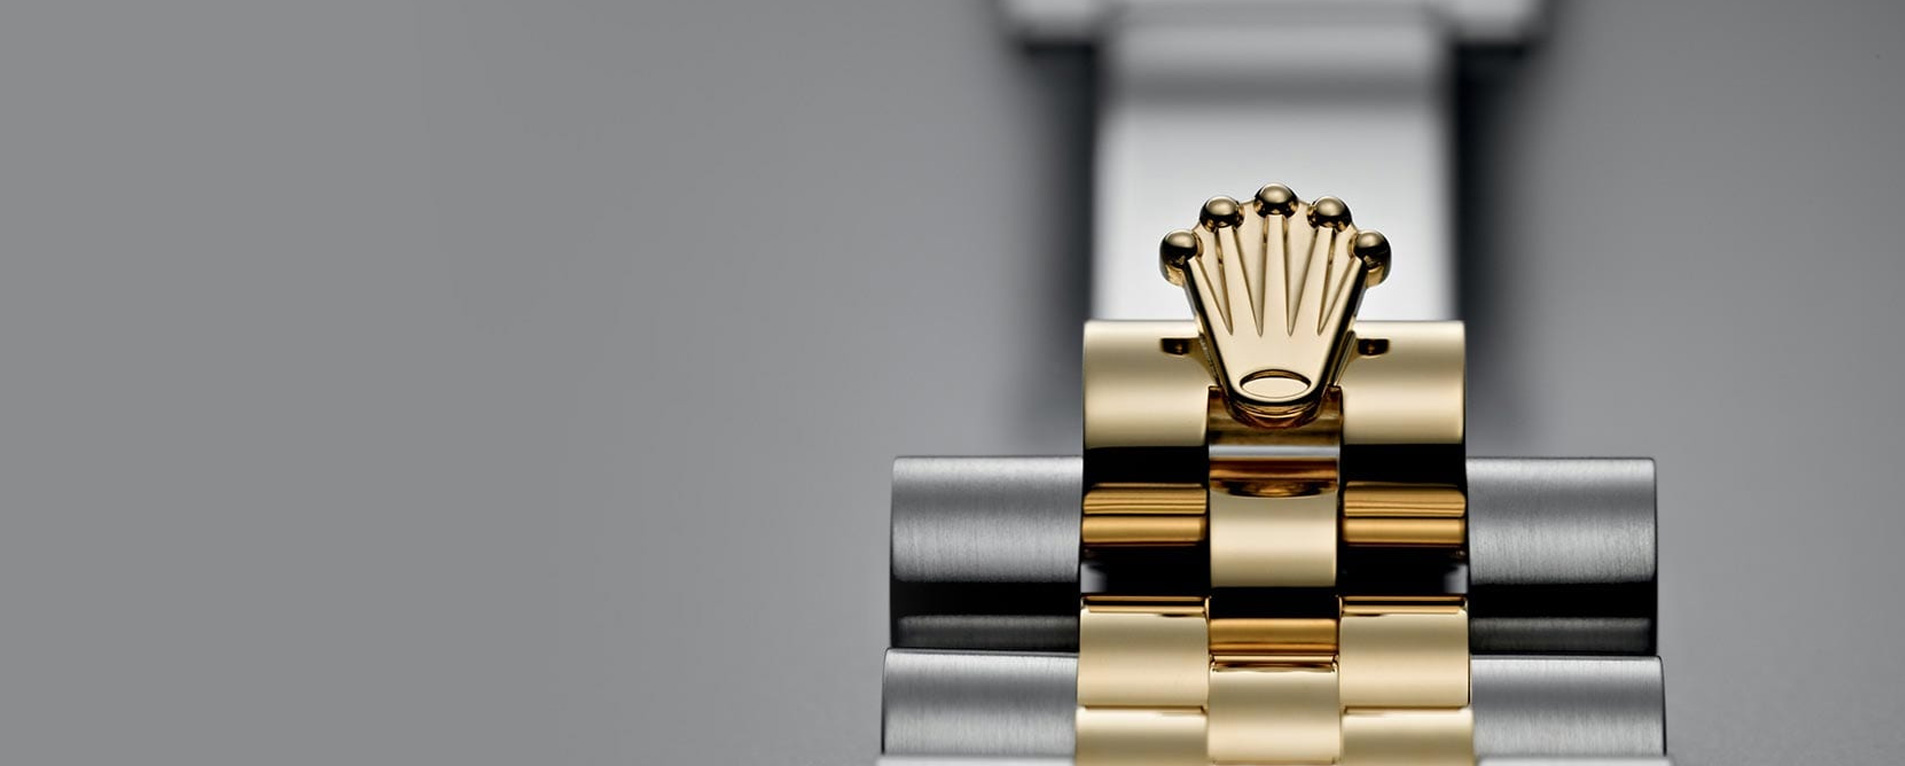 Rolex Oyster Bracelets Repair on gray background